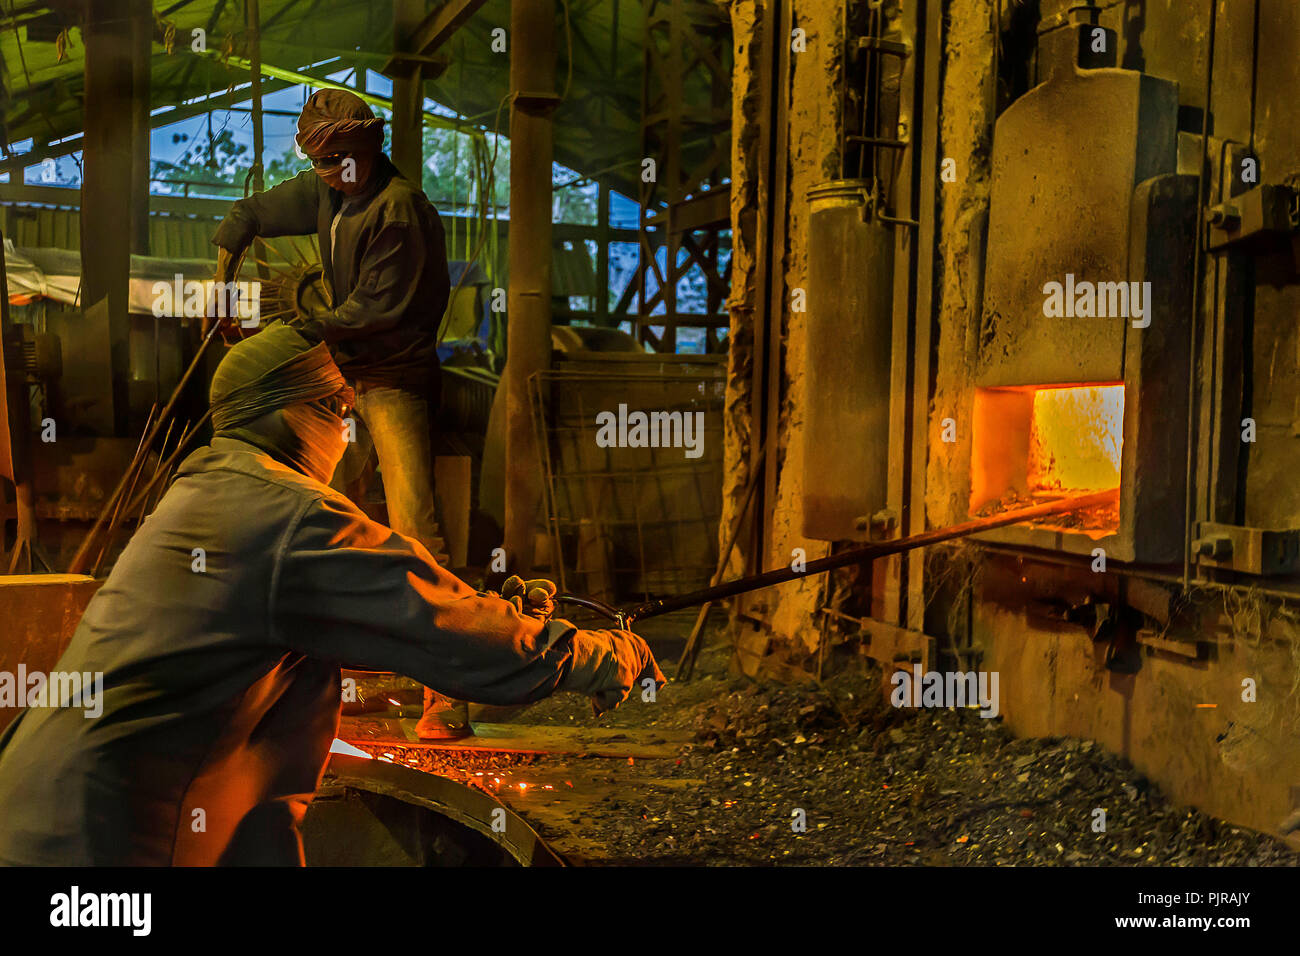 Indian industrial workers working hard in tough situation in foundry. - Stock Image